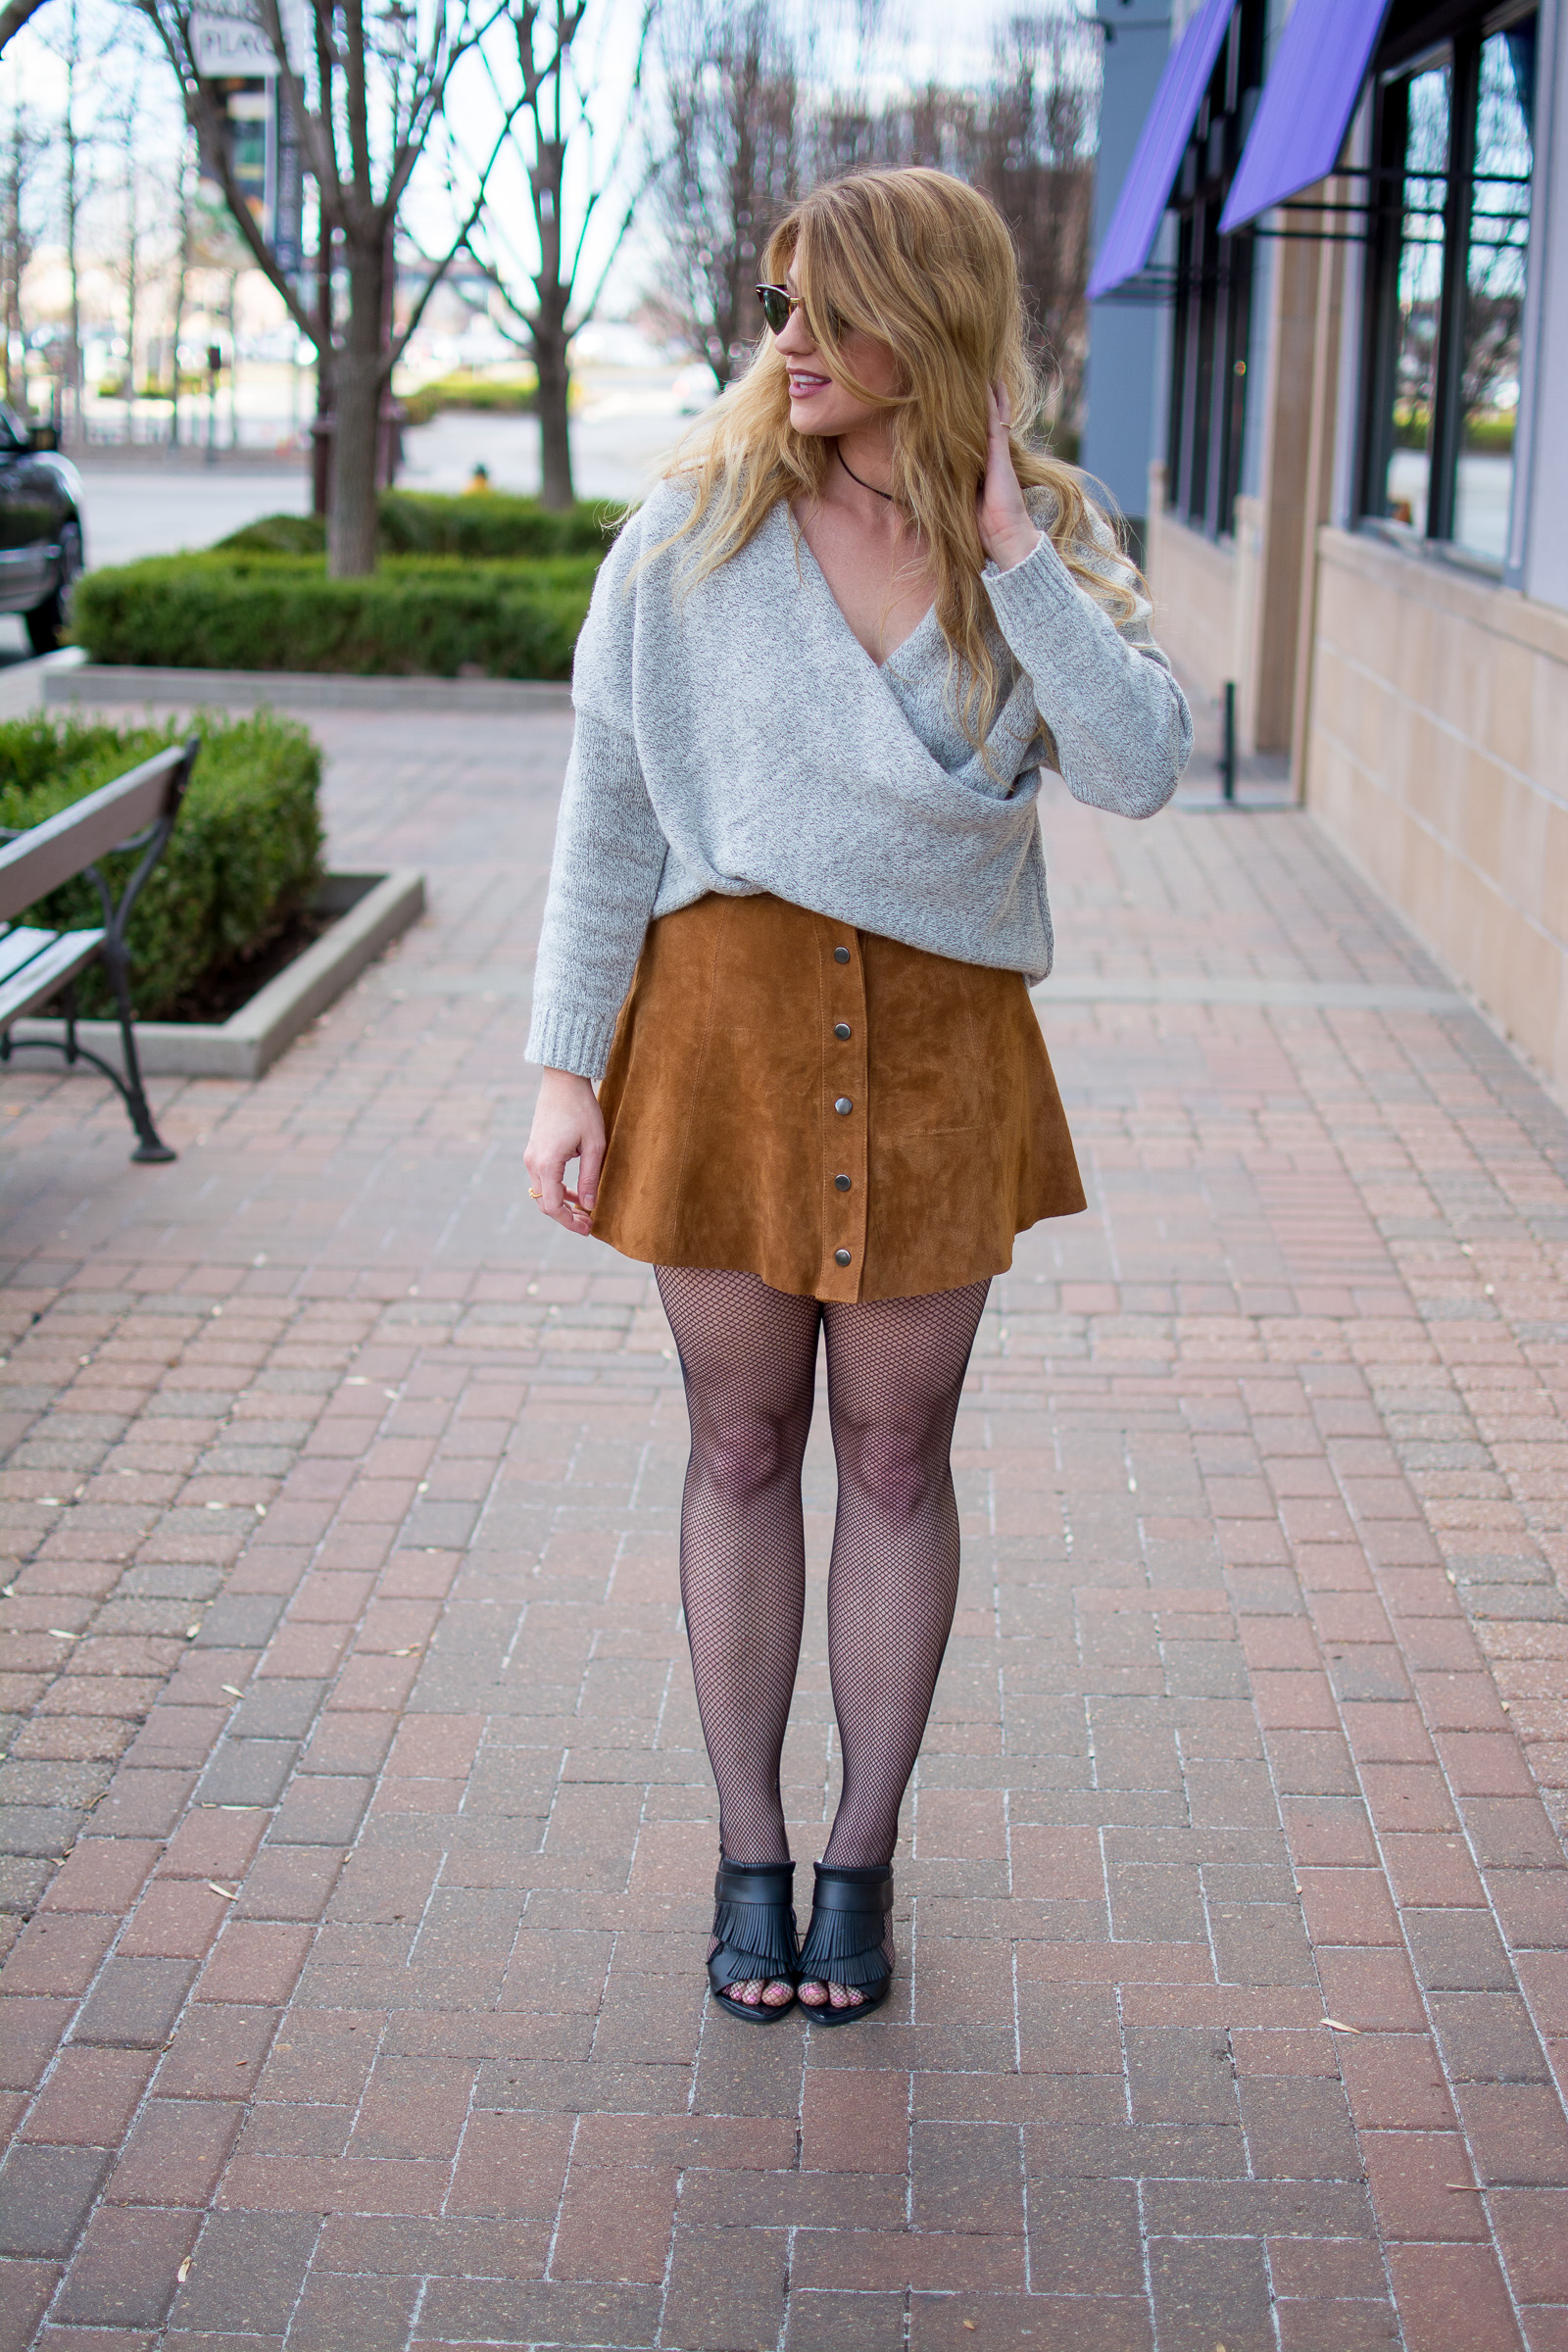 Criss Cross Sweater + Suede Skirt. | Ashley from Le Stylo Rouge